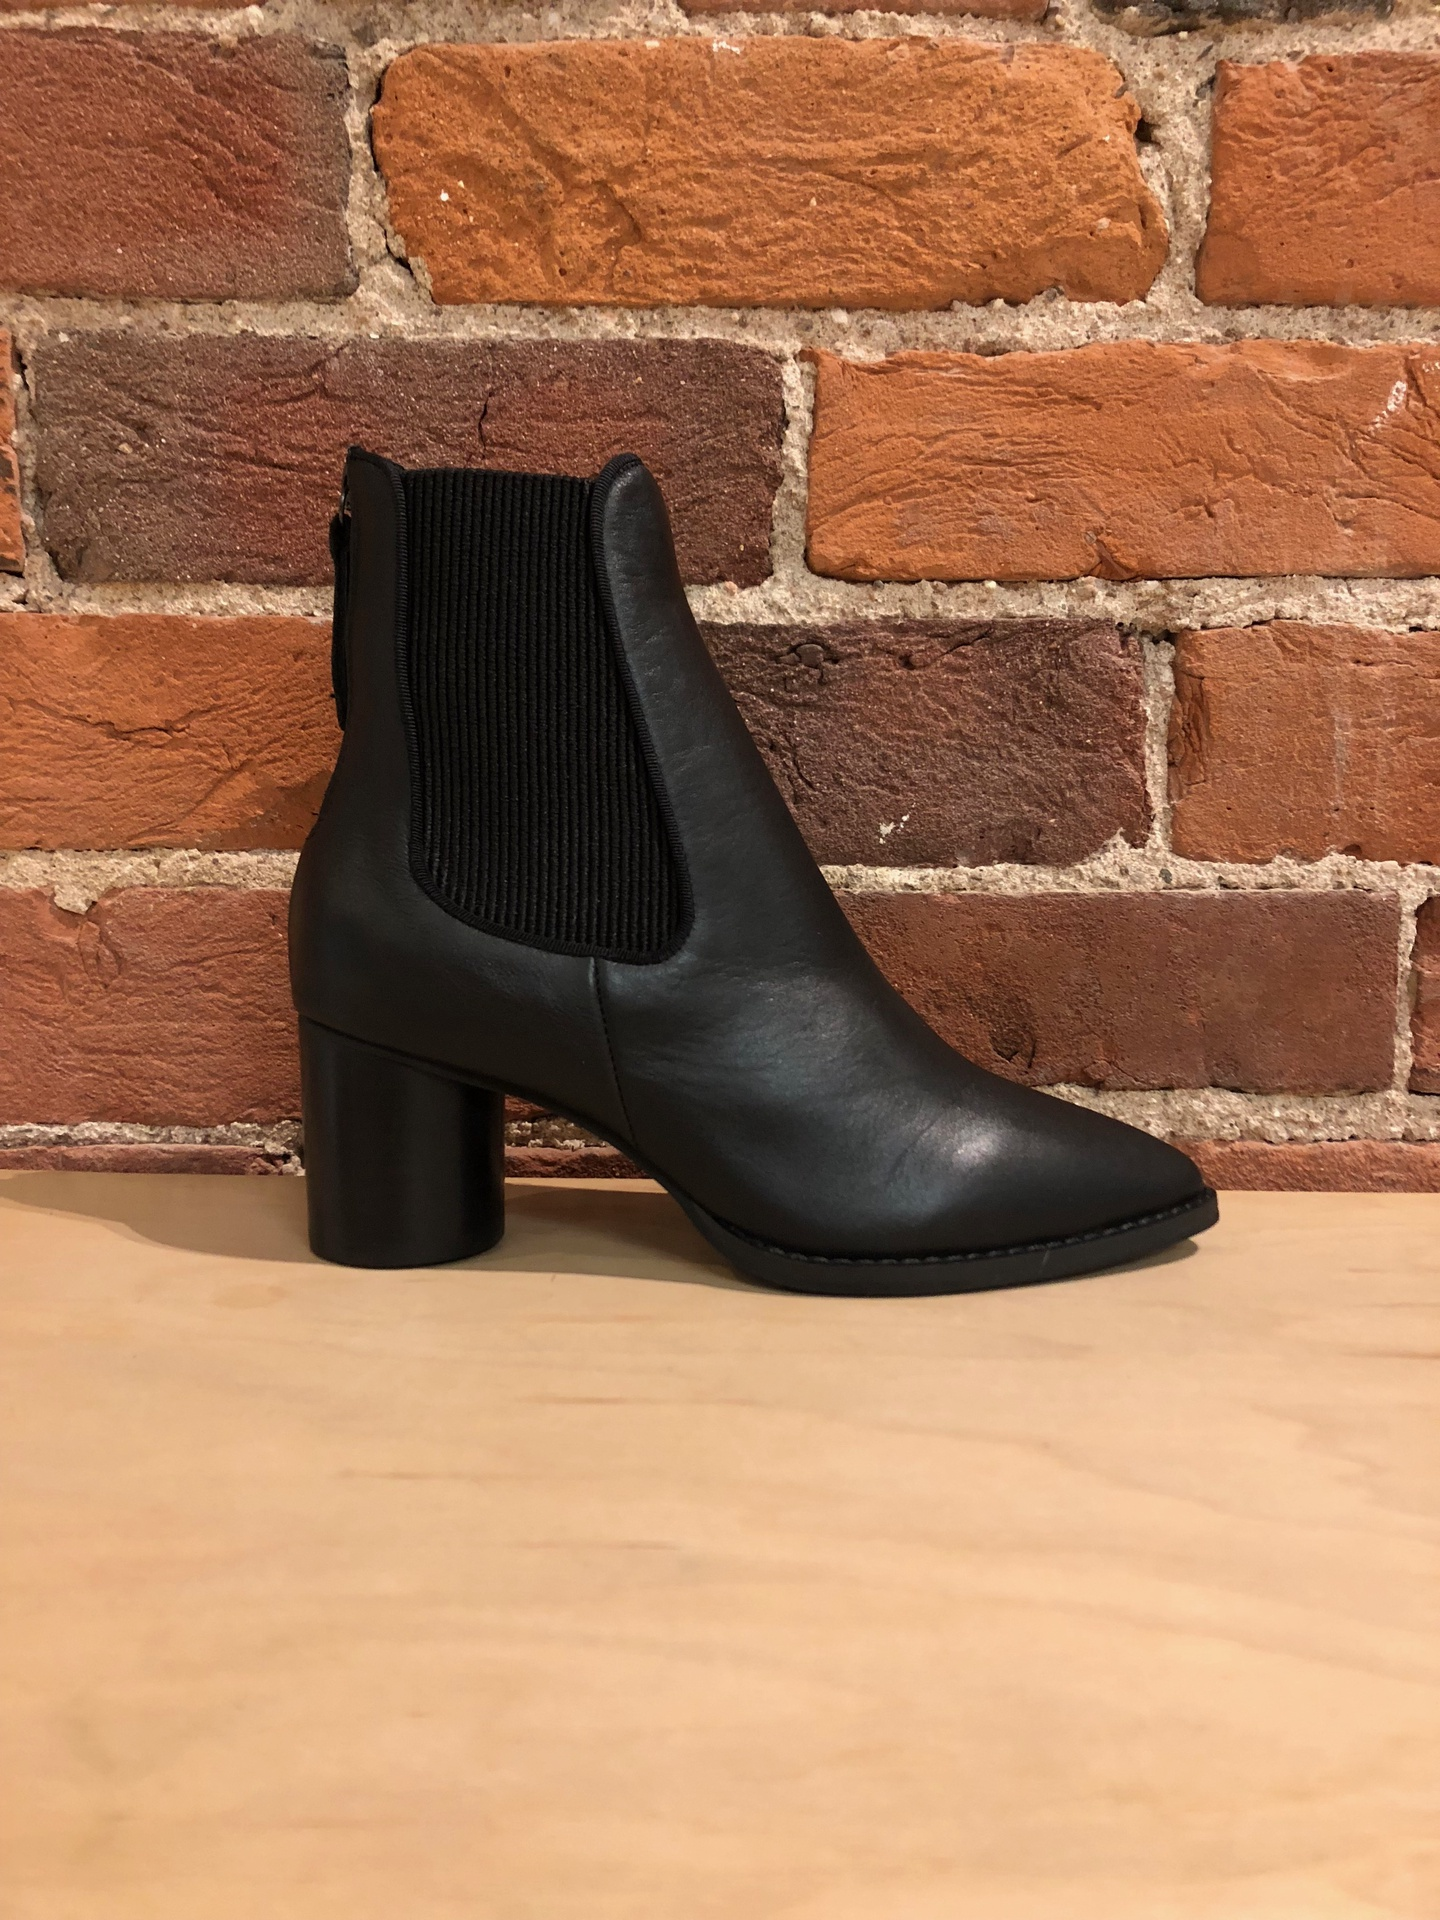 SOL SANA - ASHTON BOOT IN BLACK